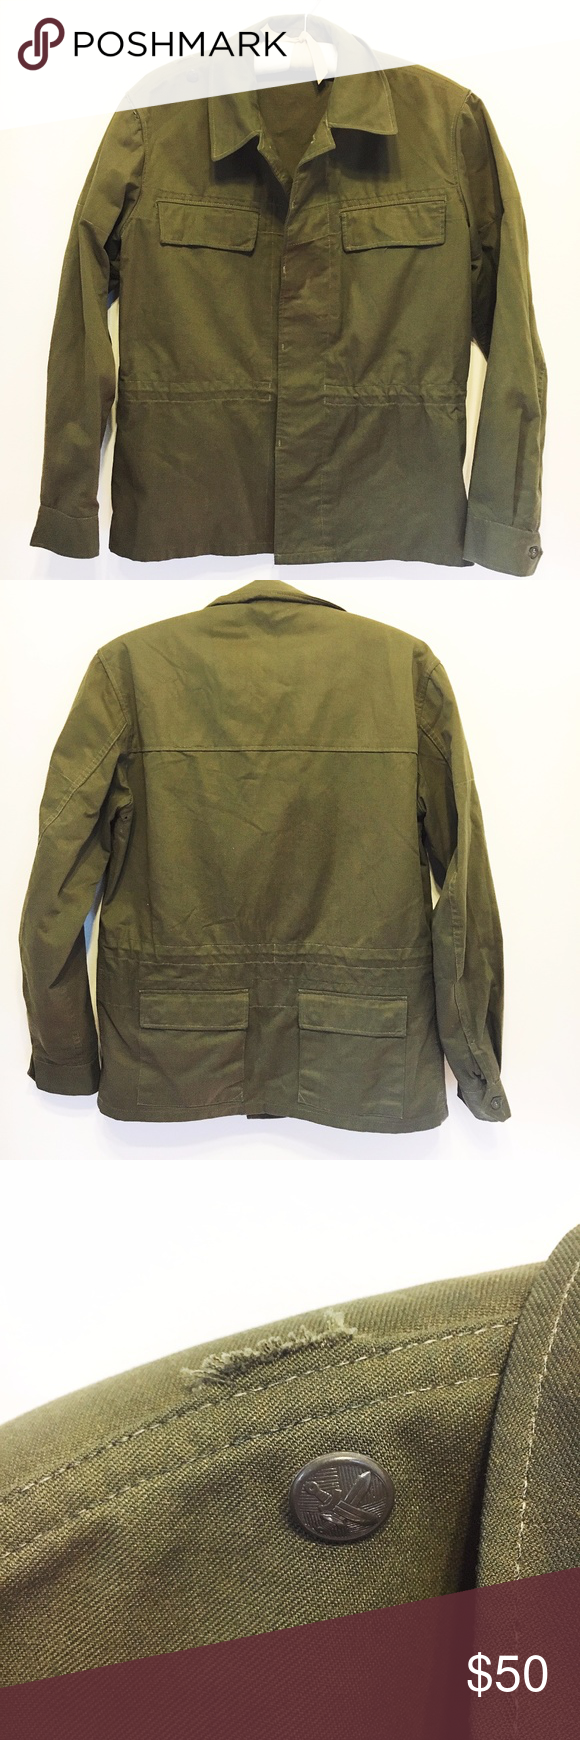 85733e9ed Vintage Zekon Michalovce Slovakian Army Jacket Vintage Zekon Michalovce  green men's Slovakian Army jacket, adjustable